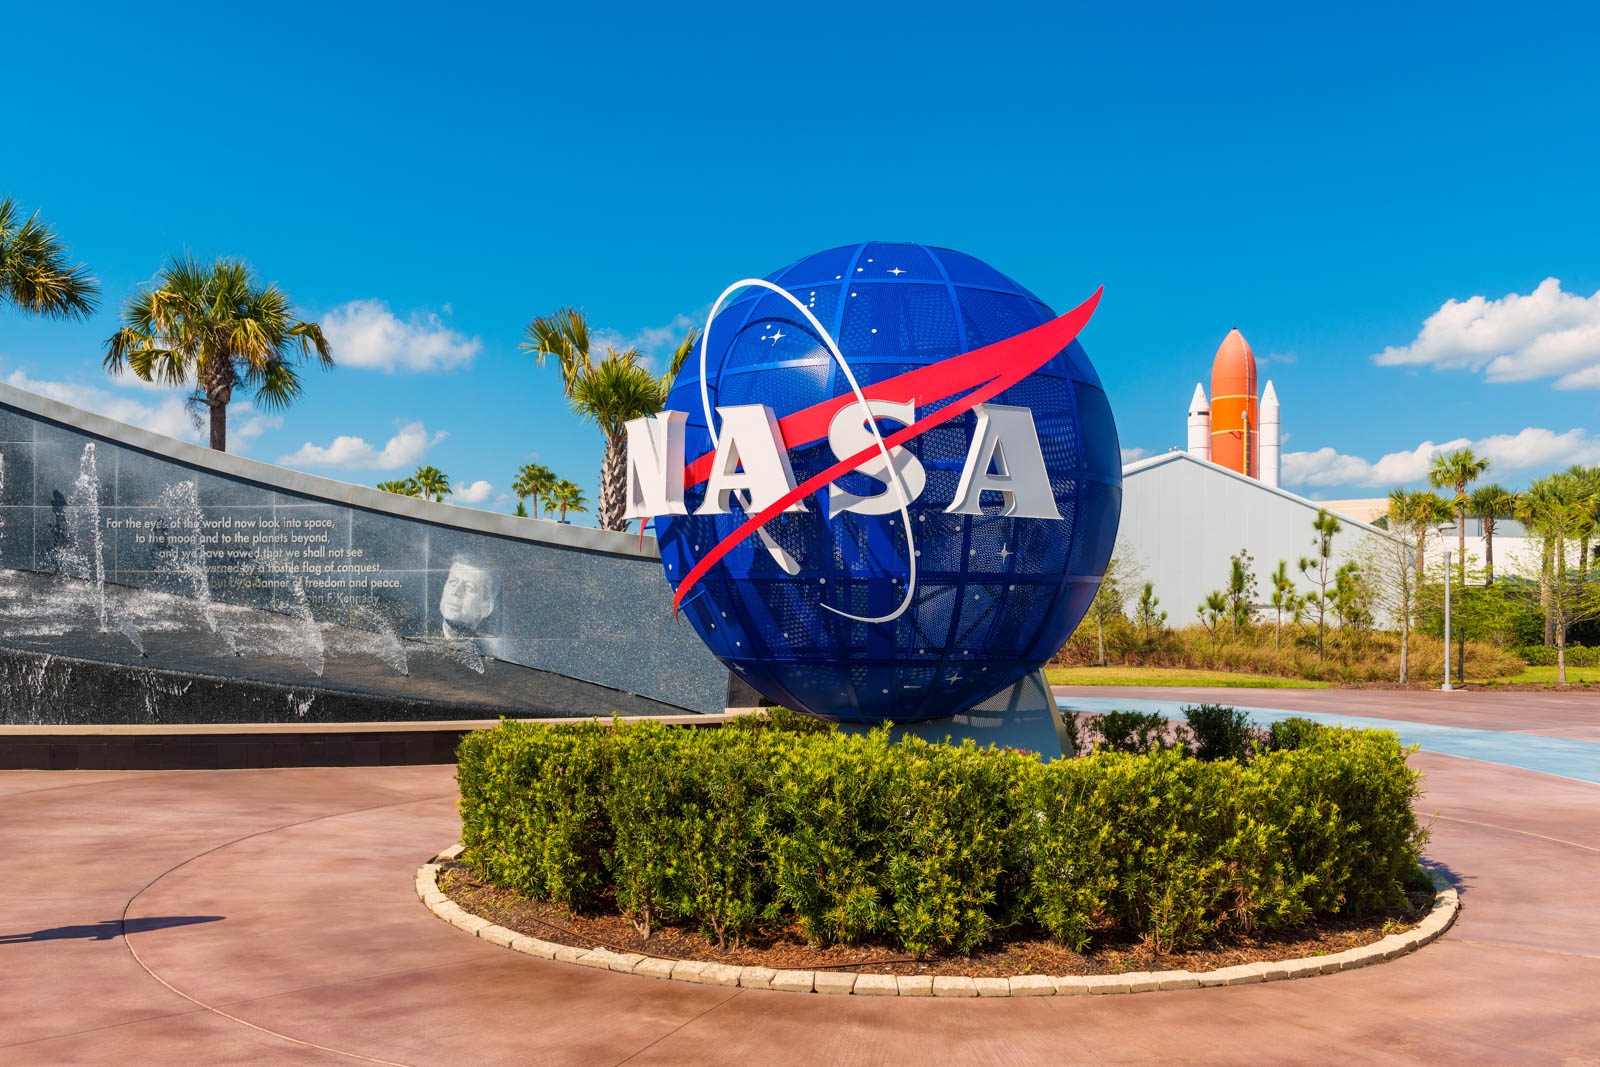 NASA's Kennedy Space Center is among the best things to do in Orlando with kids. Though, it's not one of the cheap things to do in Orlando Florida.